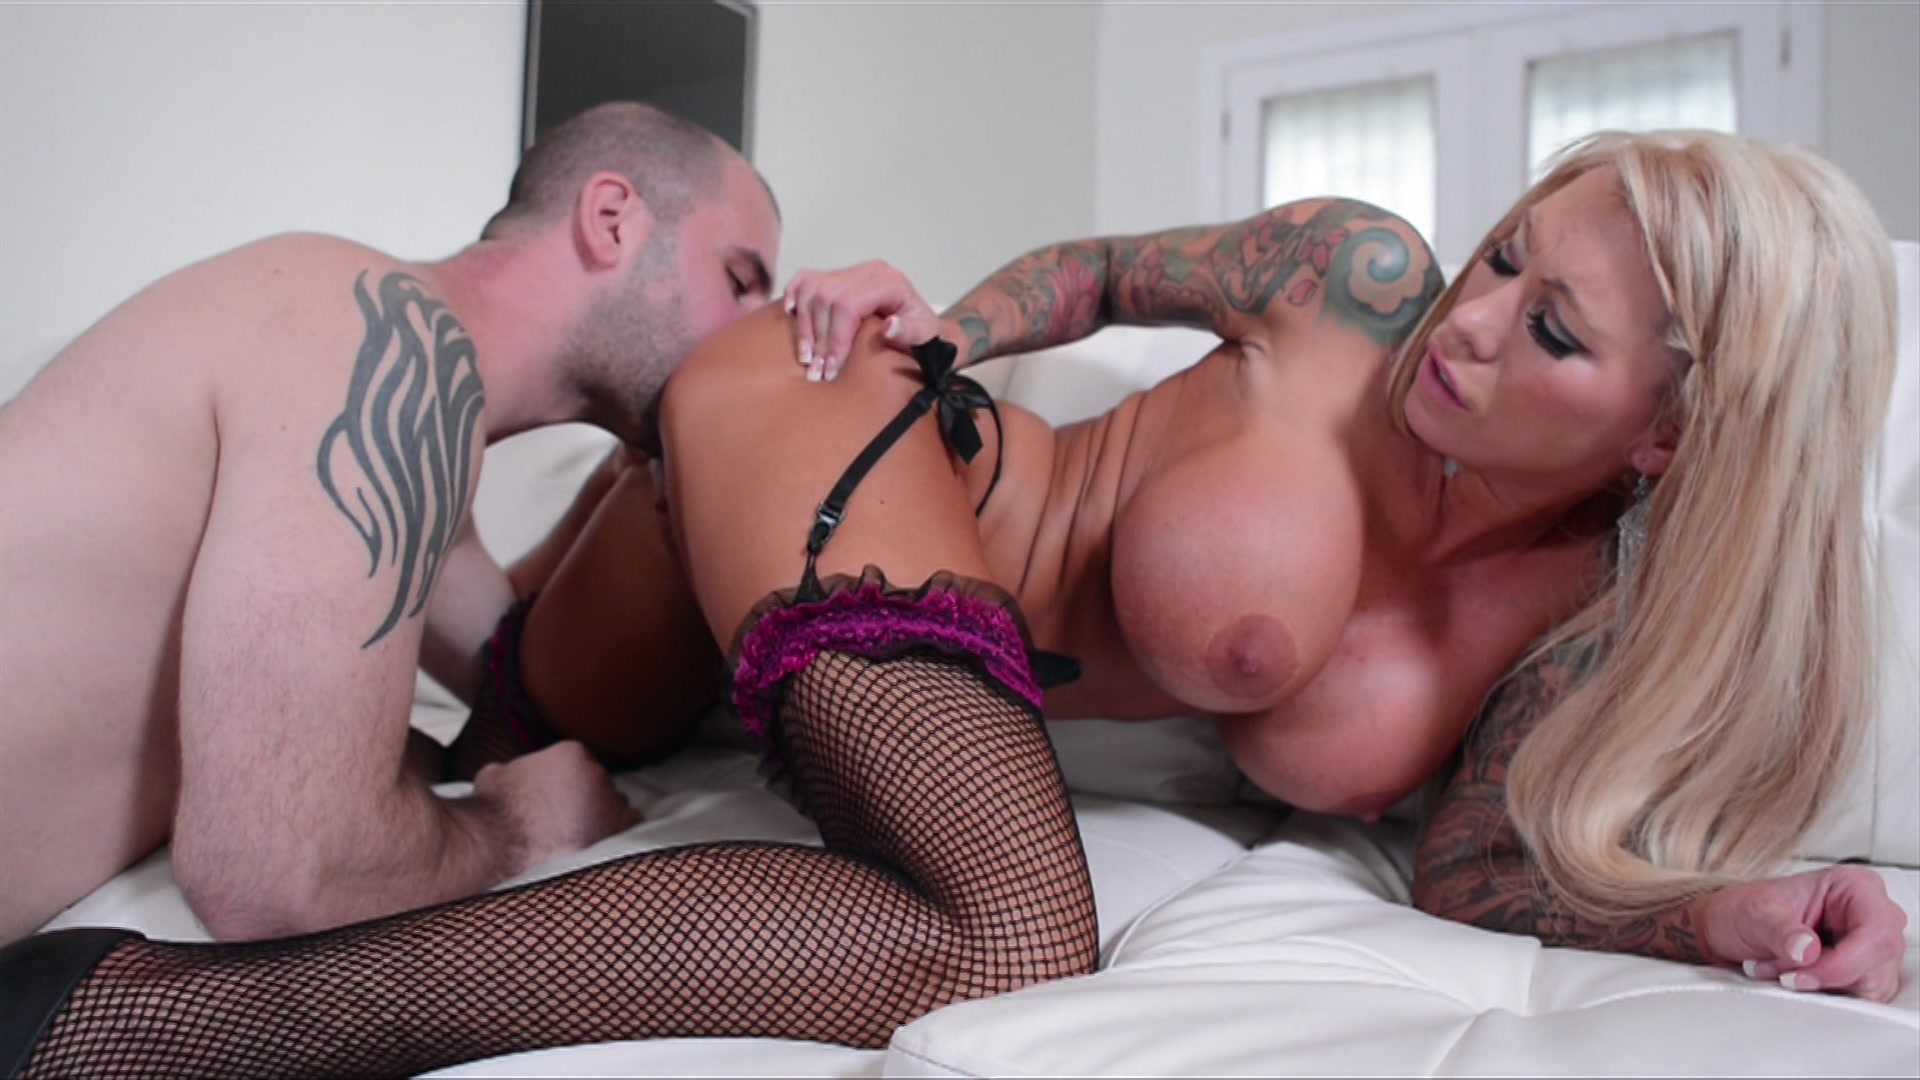 Super Busty Blonde in Fishnets Lolly Ink Takes His Big Cock on the White Couch Starring:  Lolly Ink